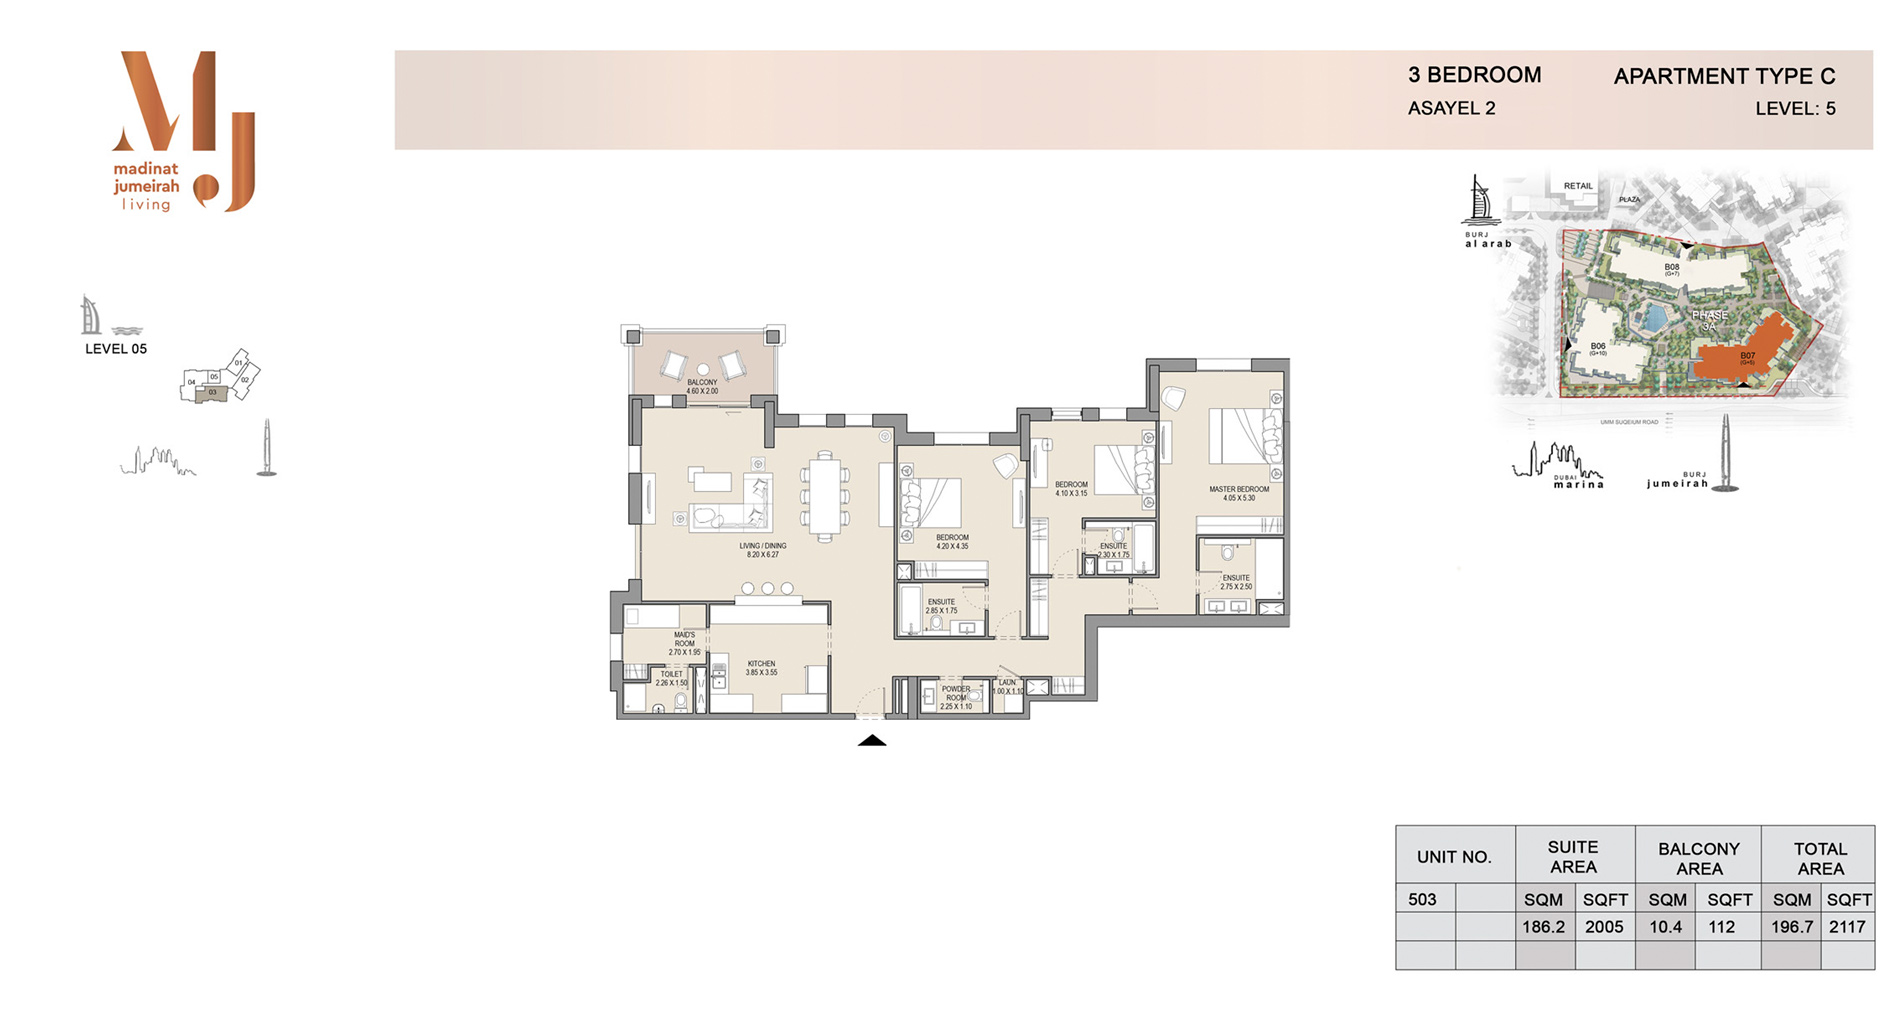 Building 2, 3 Bed Type C Level 5, Size 2117    sq. ft.